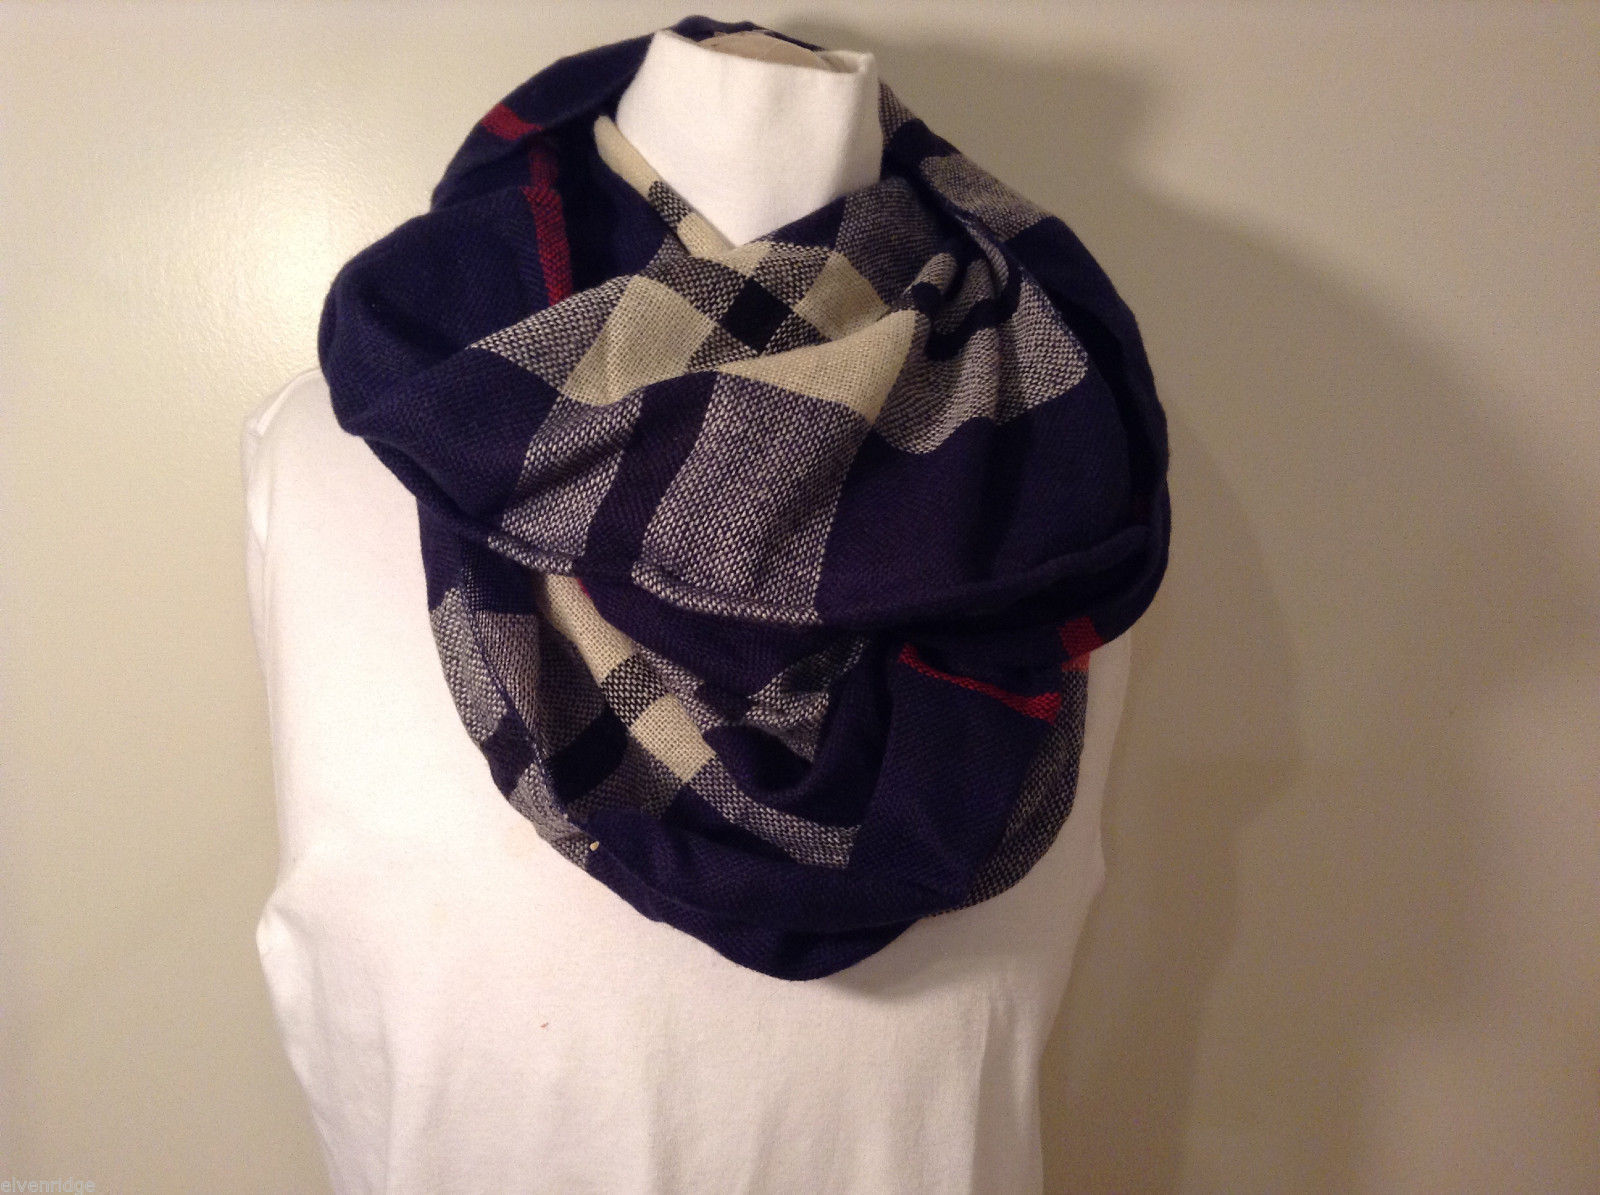 LOOK Infinity navy blue white red plaid scarf, wool acrylic blend